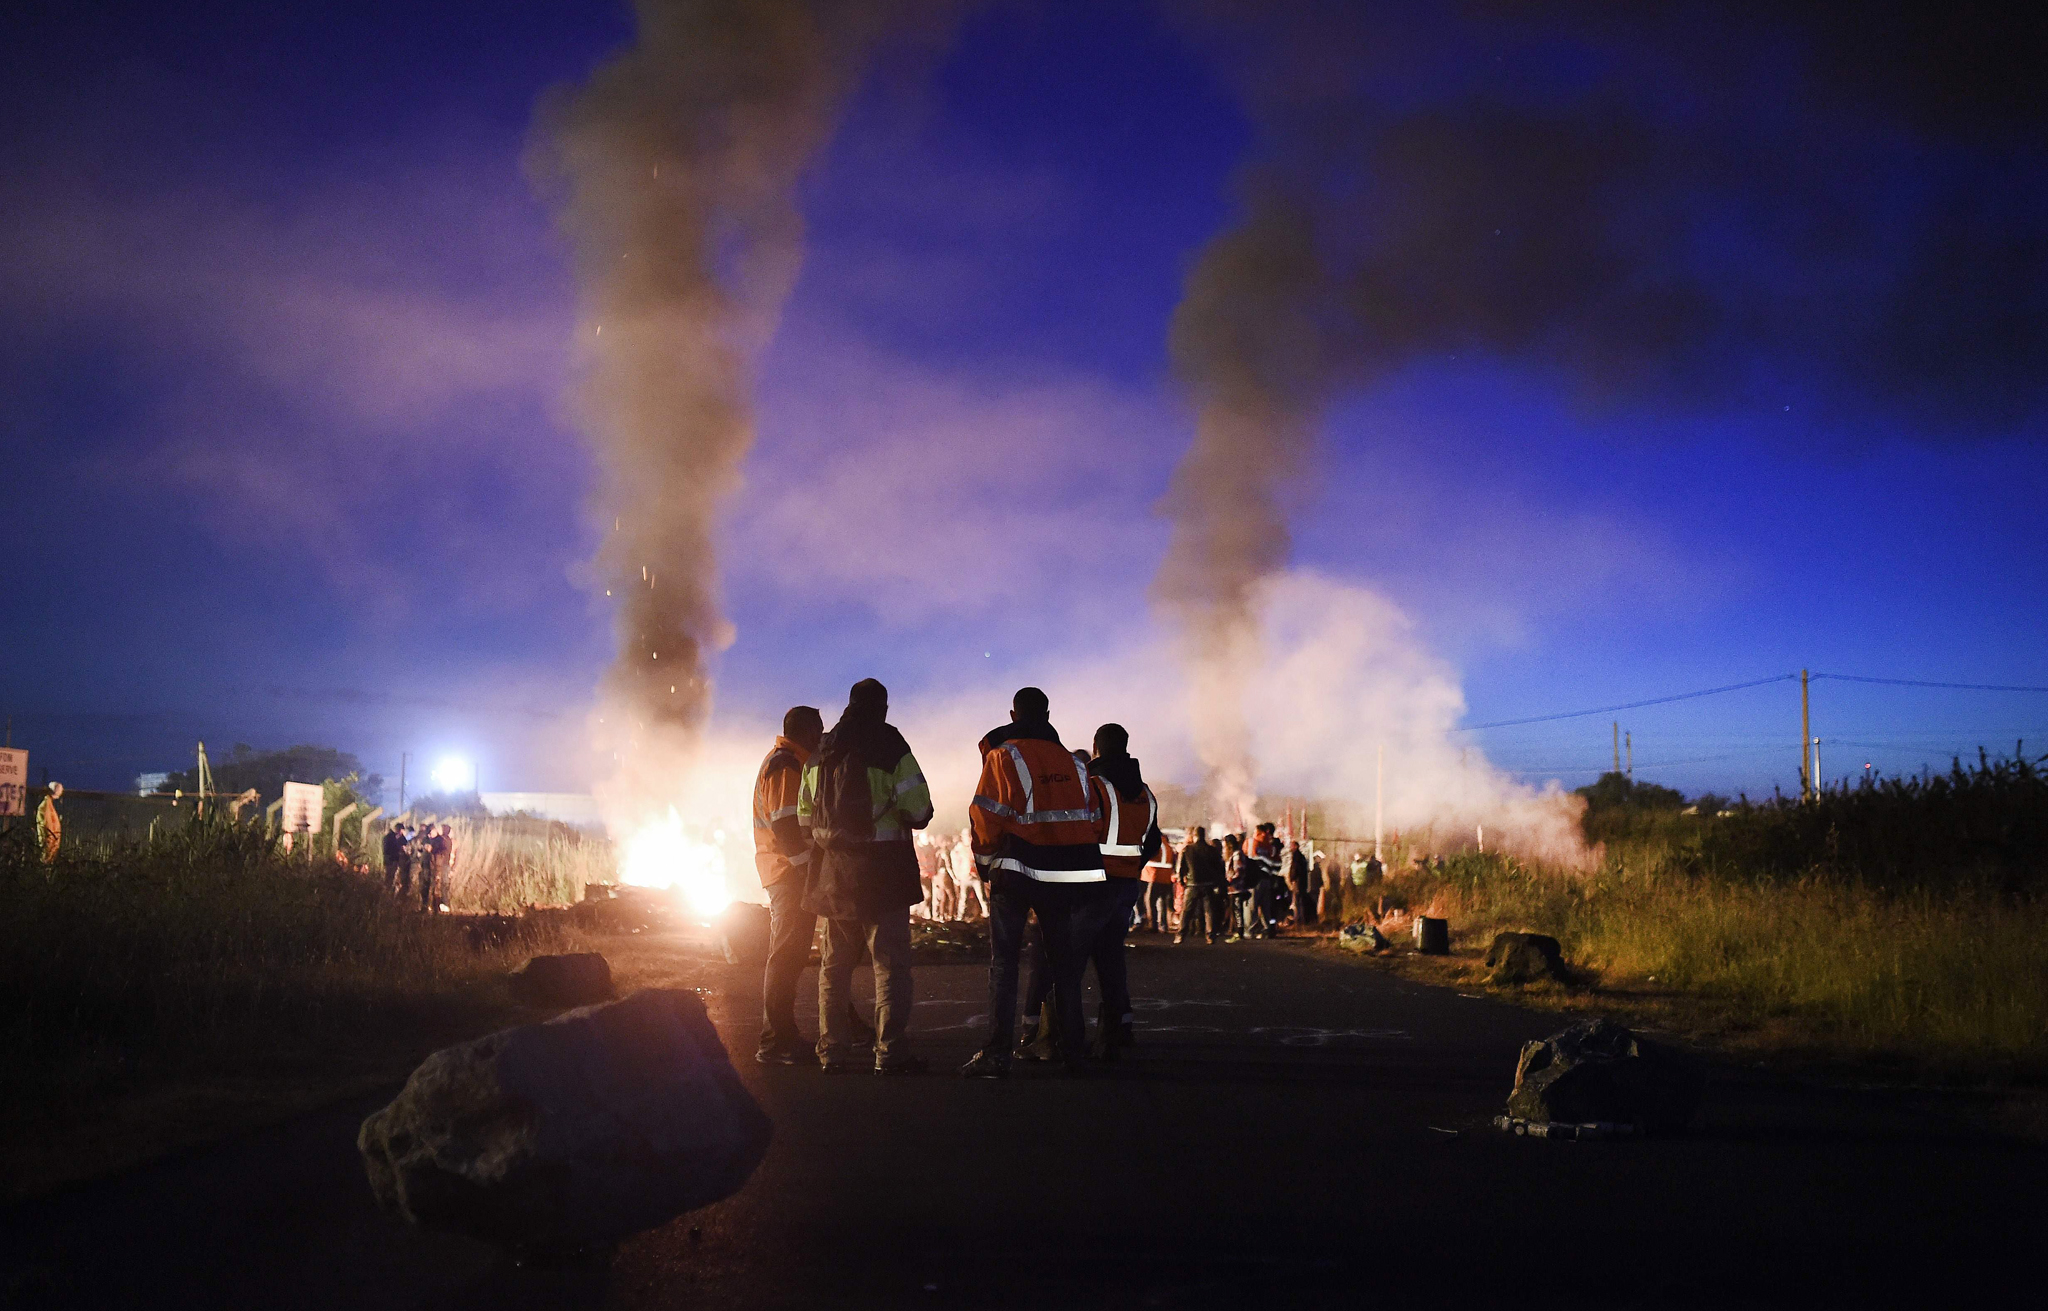 TOPSHOT - Men stand next to a fire as wo...TOPSHOT - Men stand next to a fire as workers on strike block the access to an oil depot near the Total refinery of Donges, western france, early in the morning on May 27, 2016 to protest against the government's planned labour law reforms.